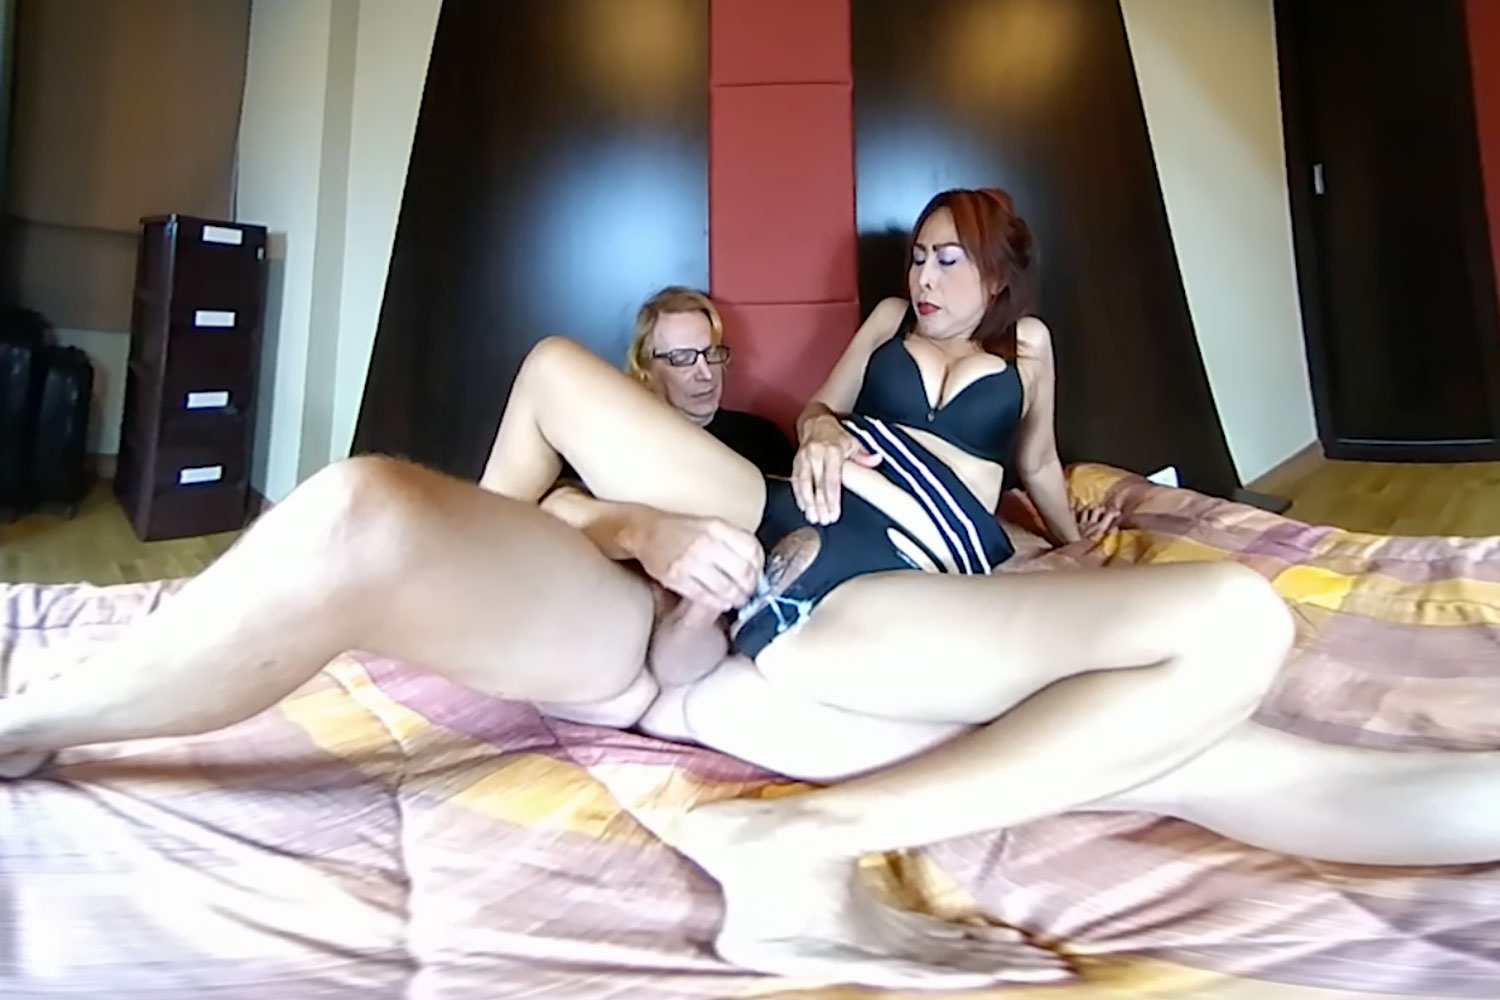 that would without kristen archive slave clit master suggest you try